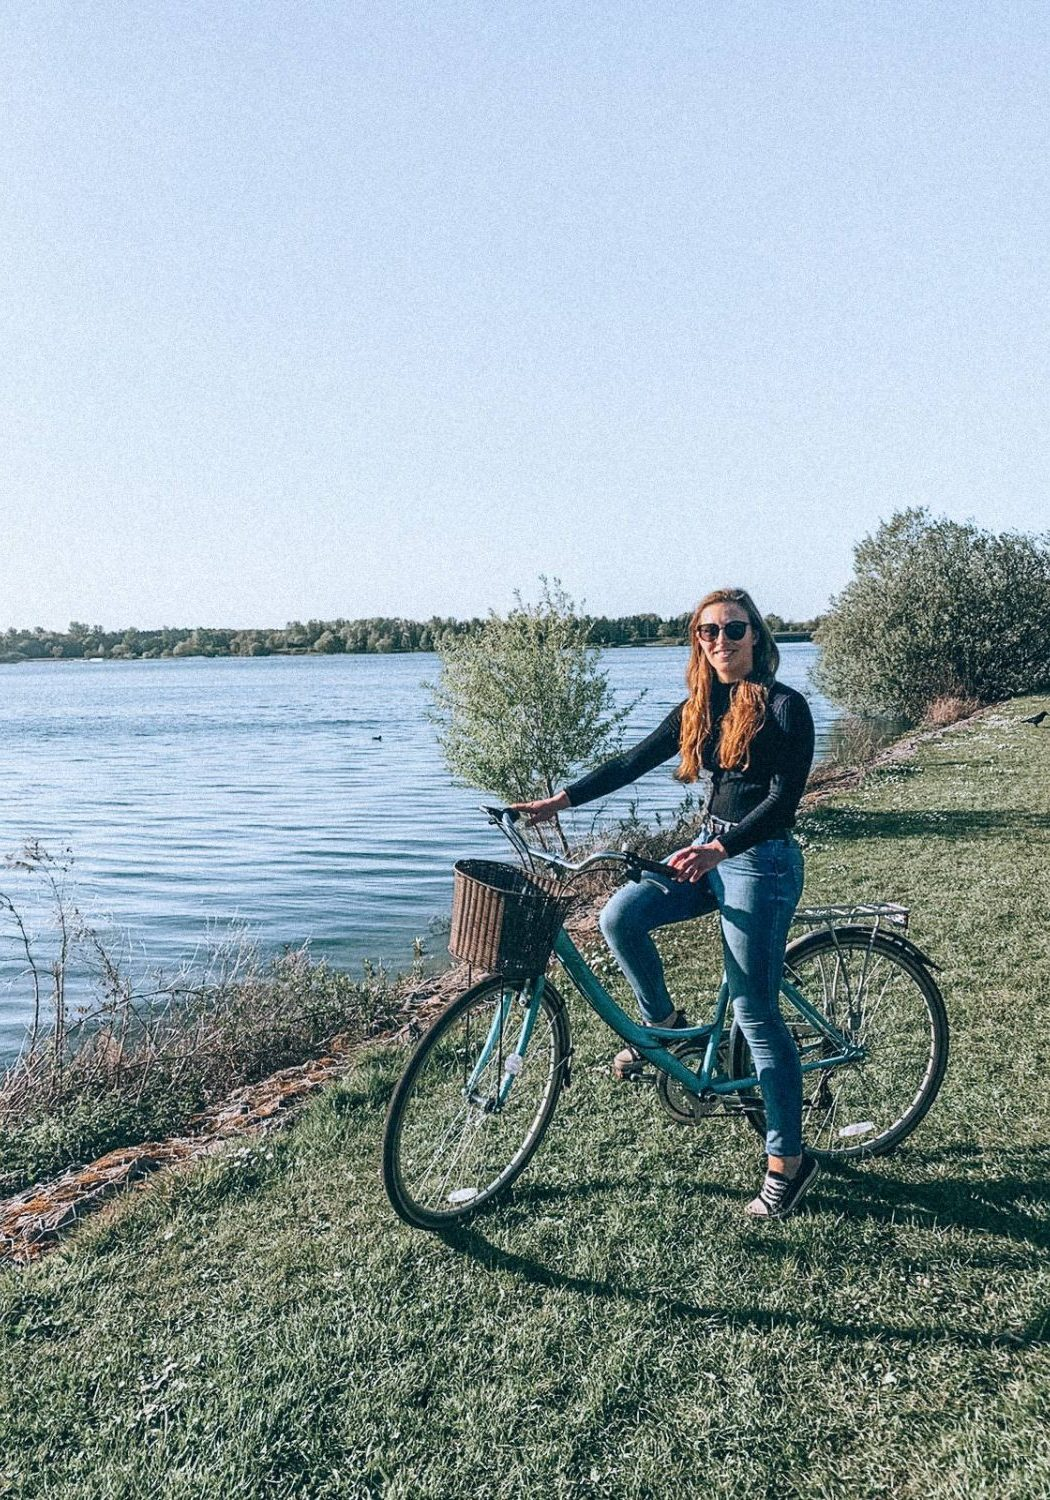 Tales from the Country - Bike ride in the countryside